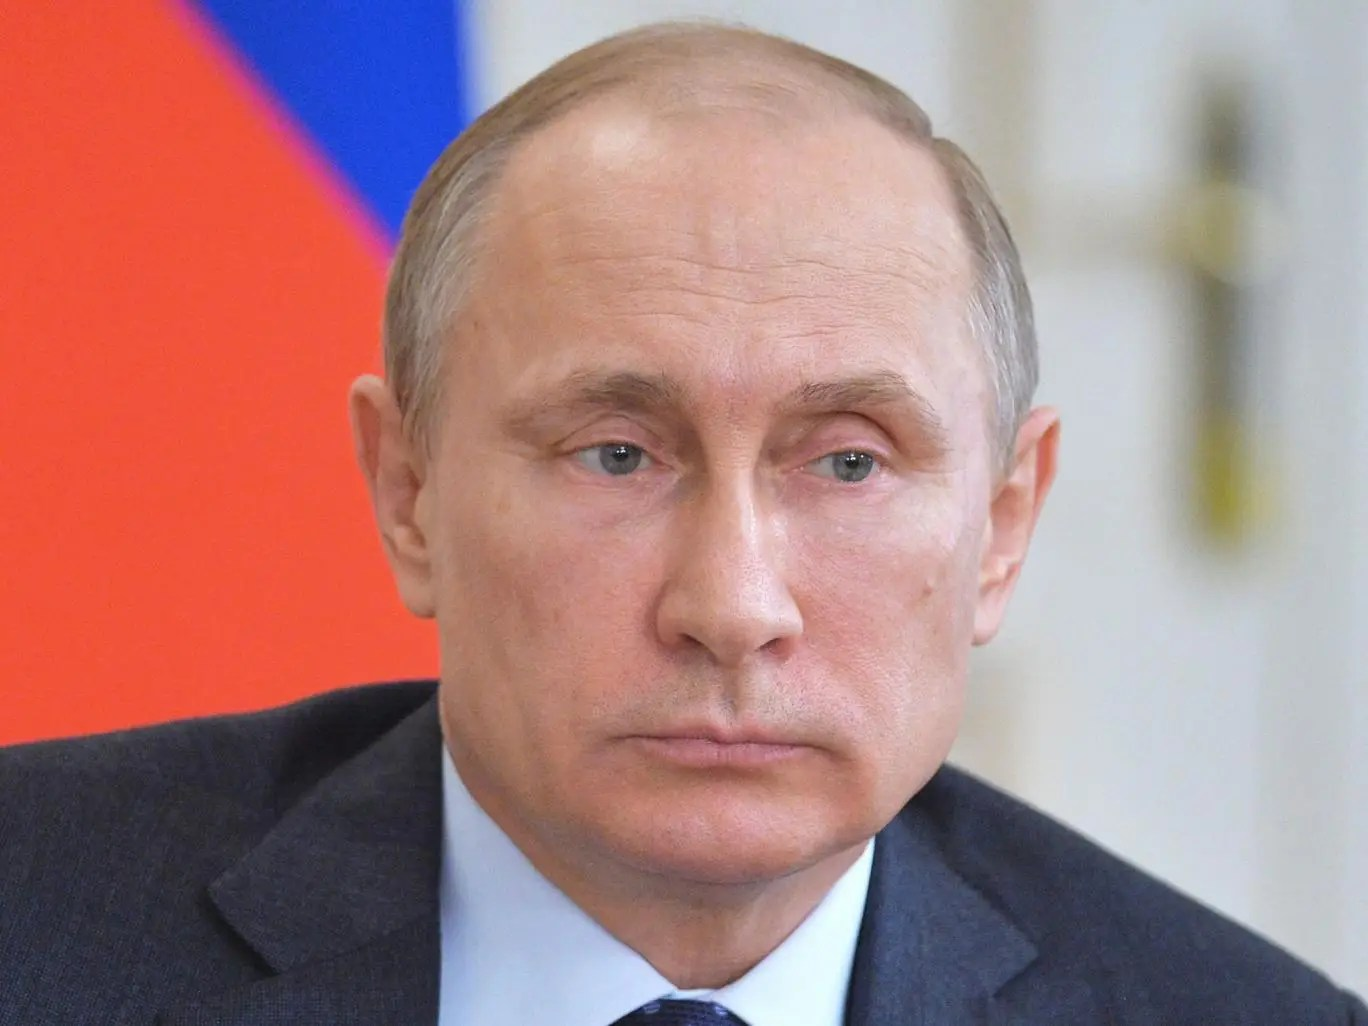 Putin told the Arab League that international military intervention was not the way to solve the world's conflicts